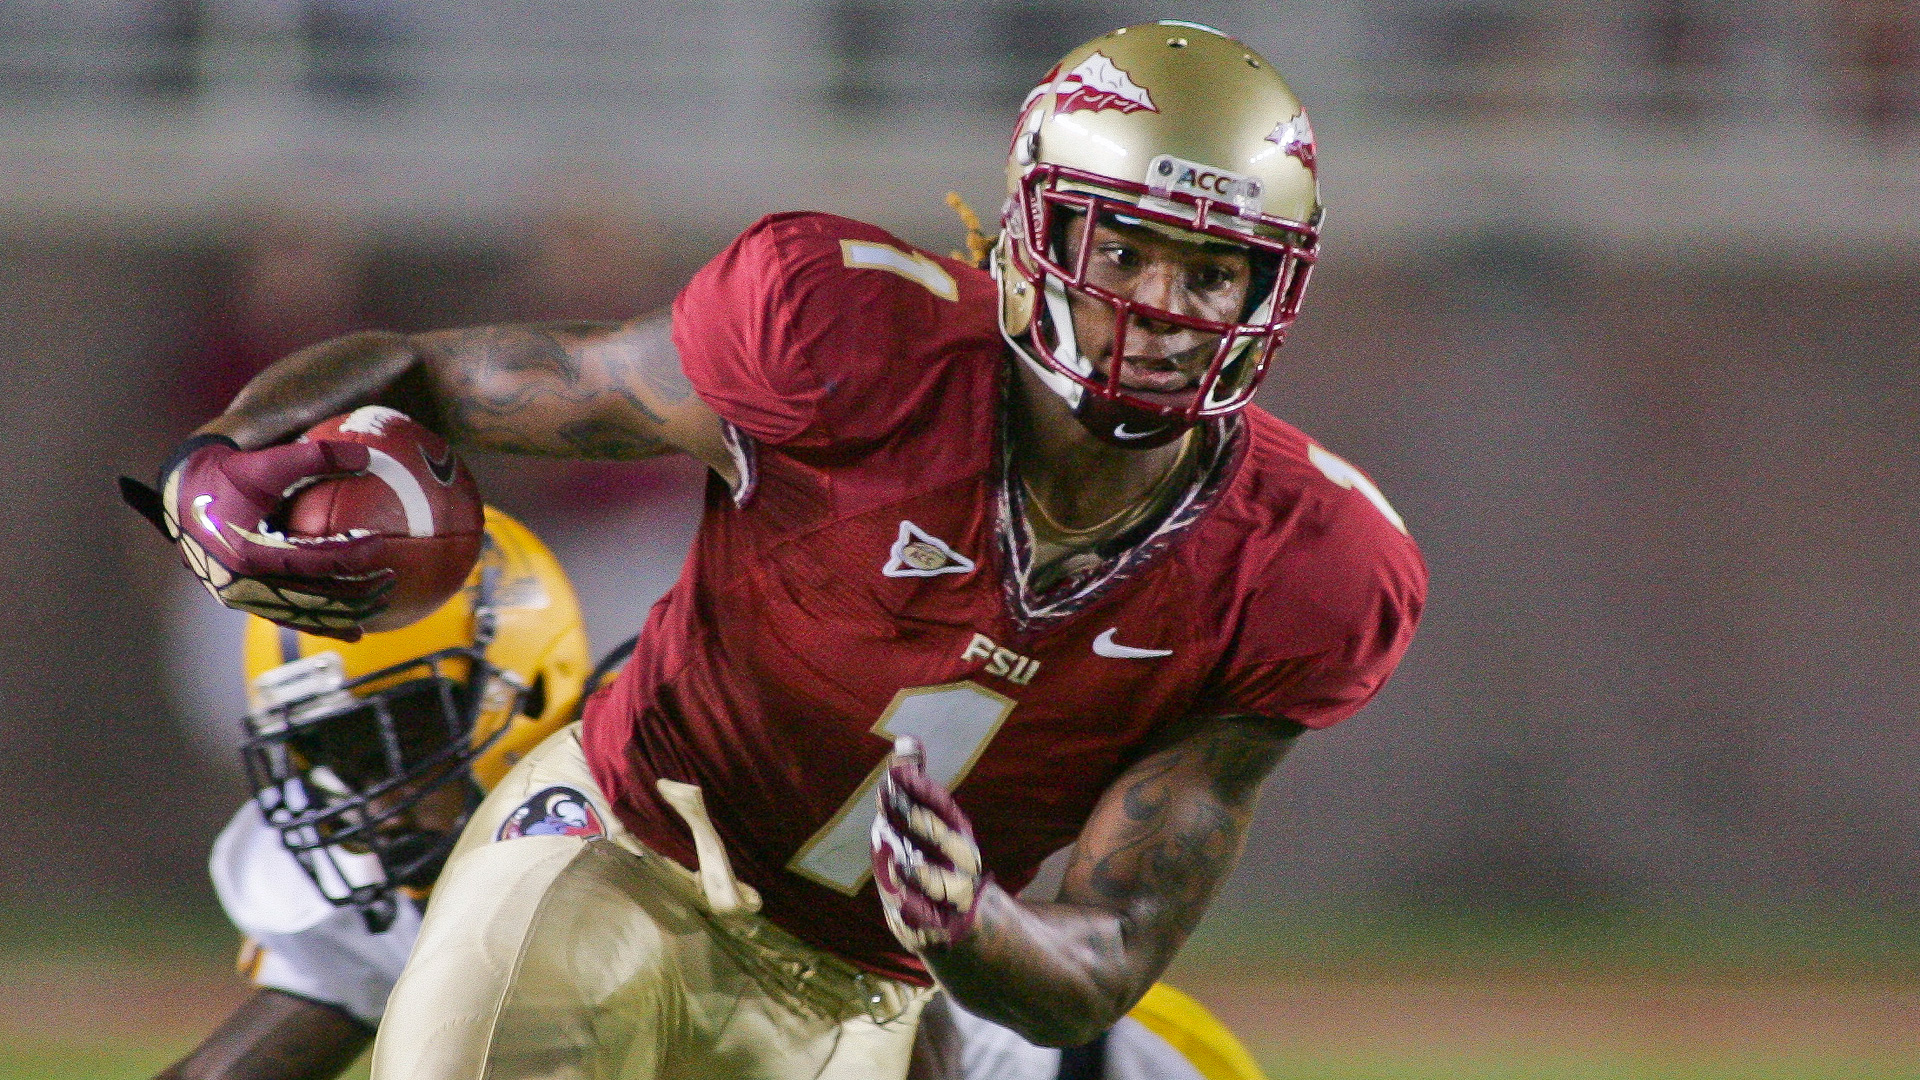 2014 NFL Draft -- Panthers select Kelvin Benjamin with No. 28 pick